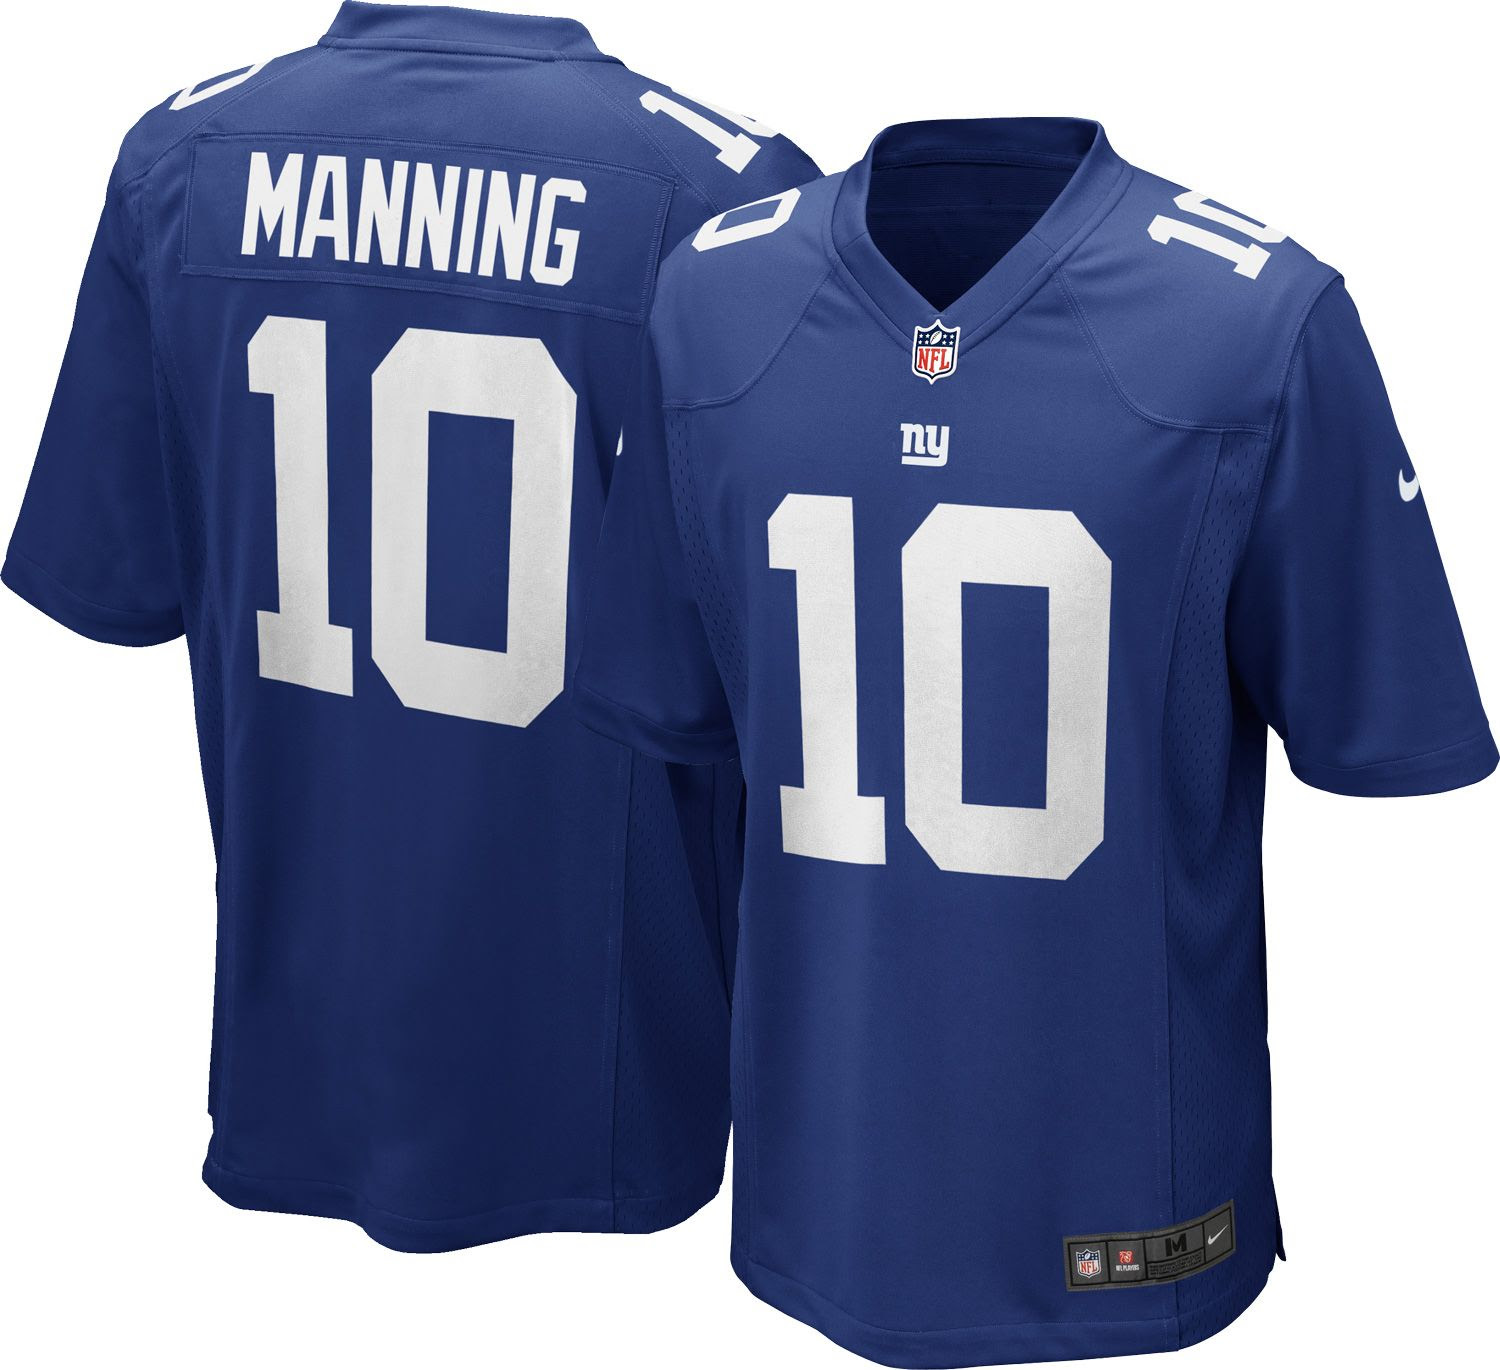 Image result for manning jersey